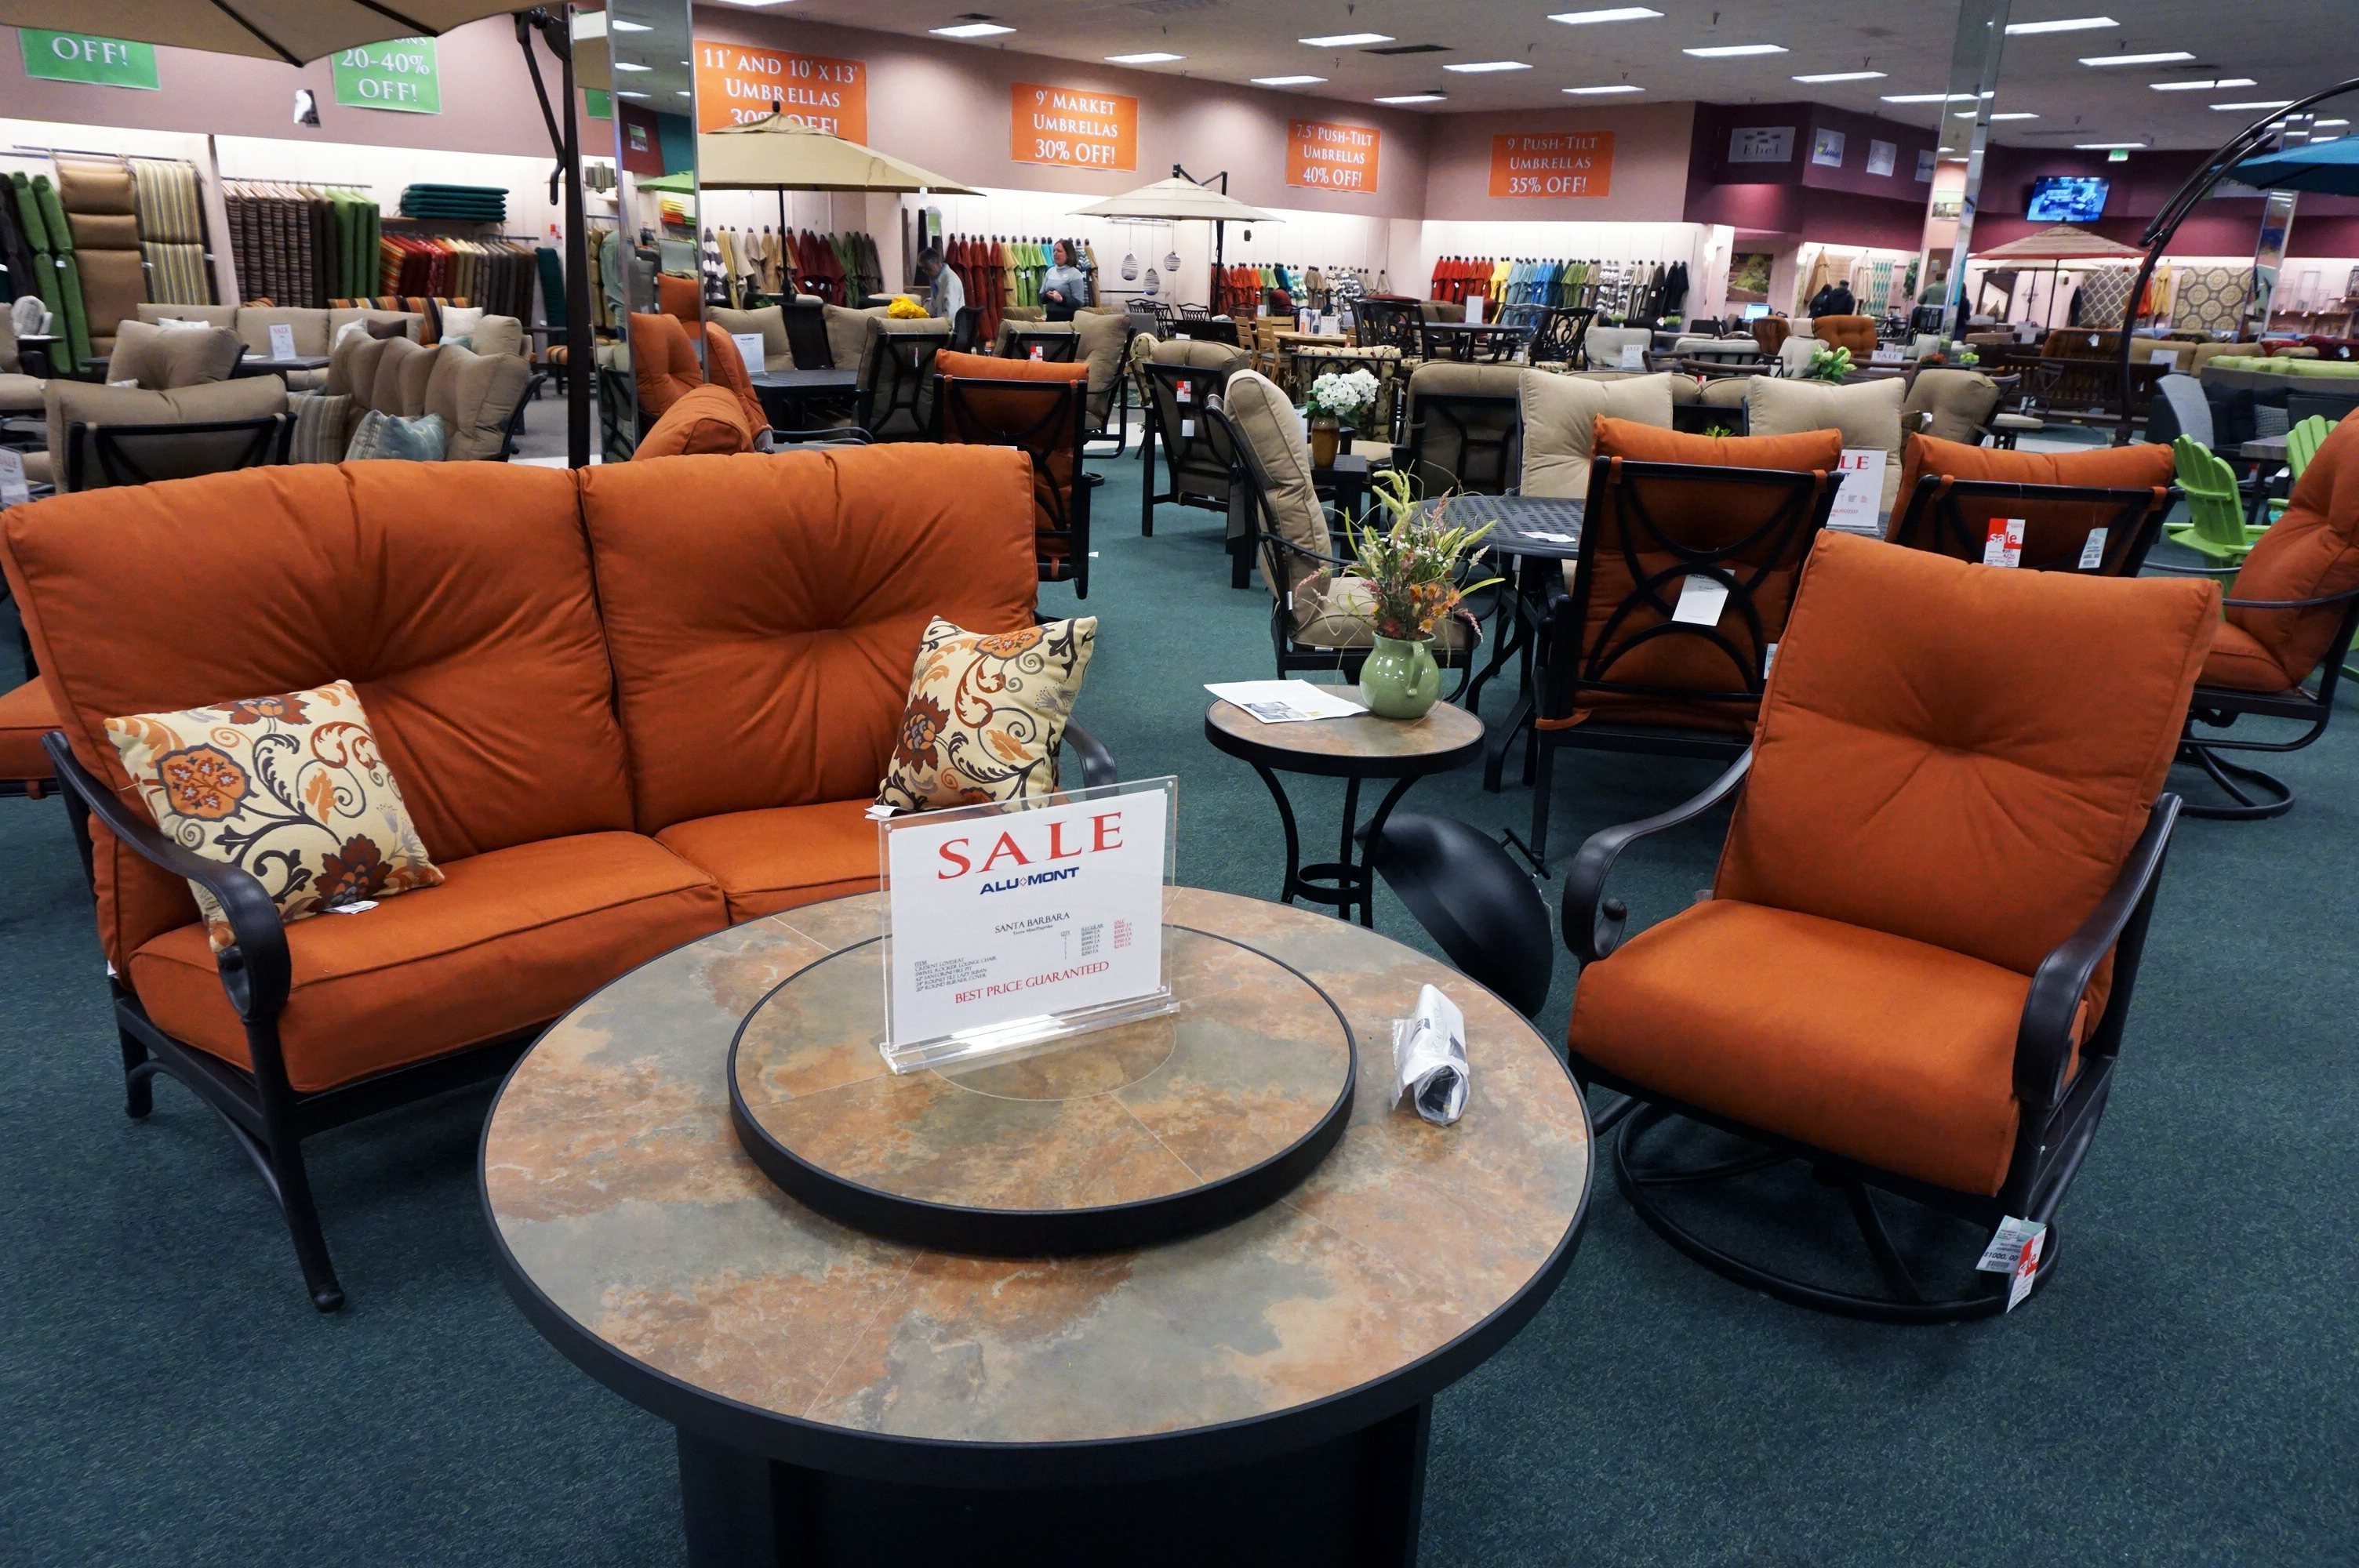 Superb The Littleton Location Will Add More Space For Patio Furniture.